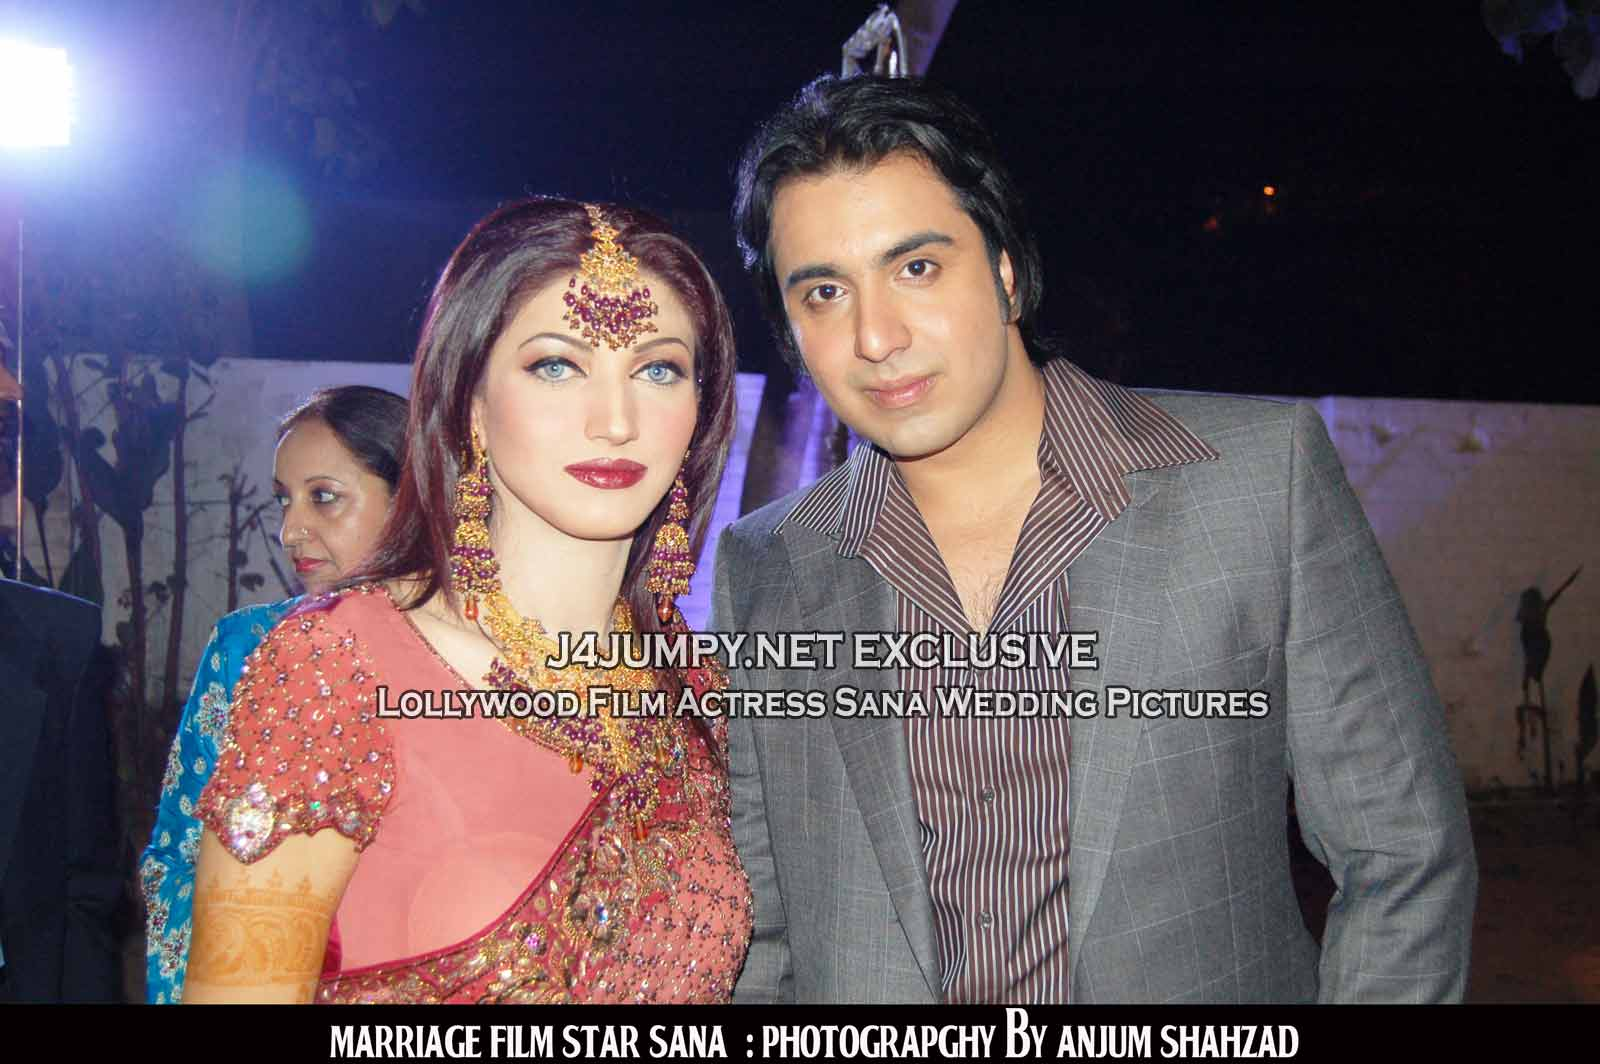 http://j4jumpy.net/wp-content/uploads/2008/12/sana_lollywood_actress_wedding_02.jpg